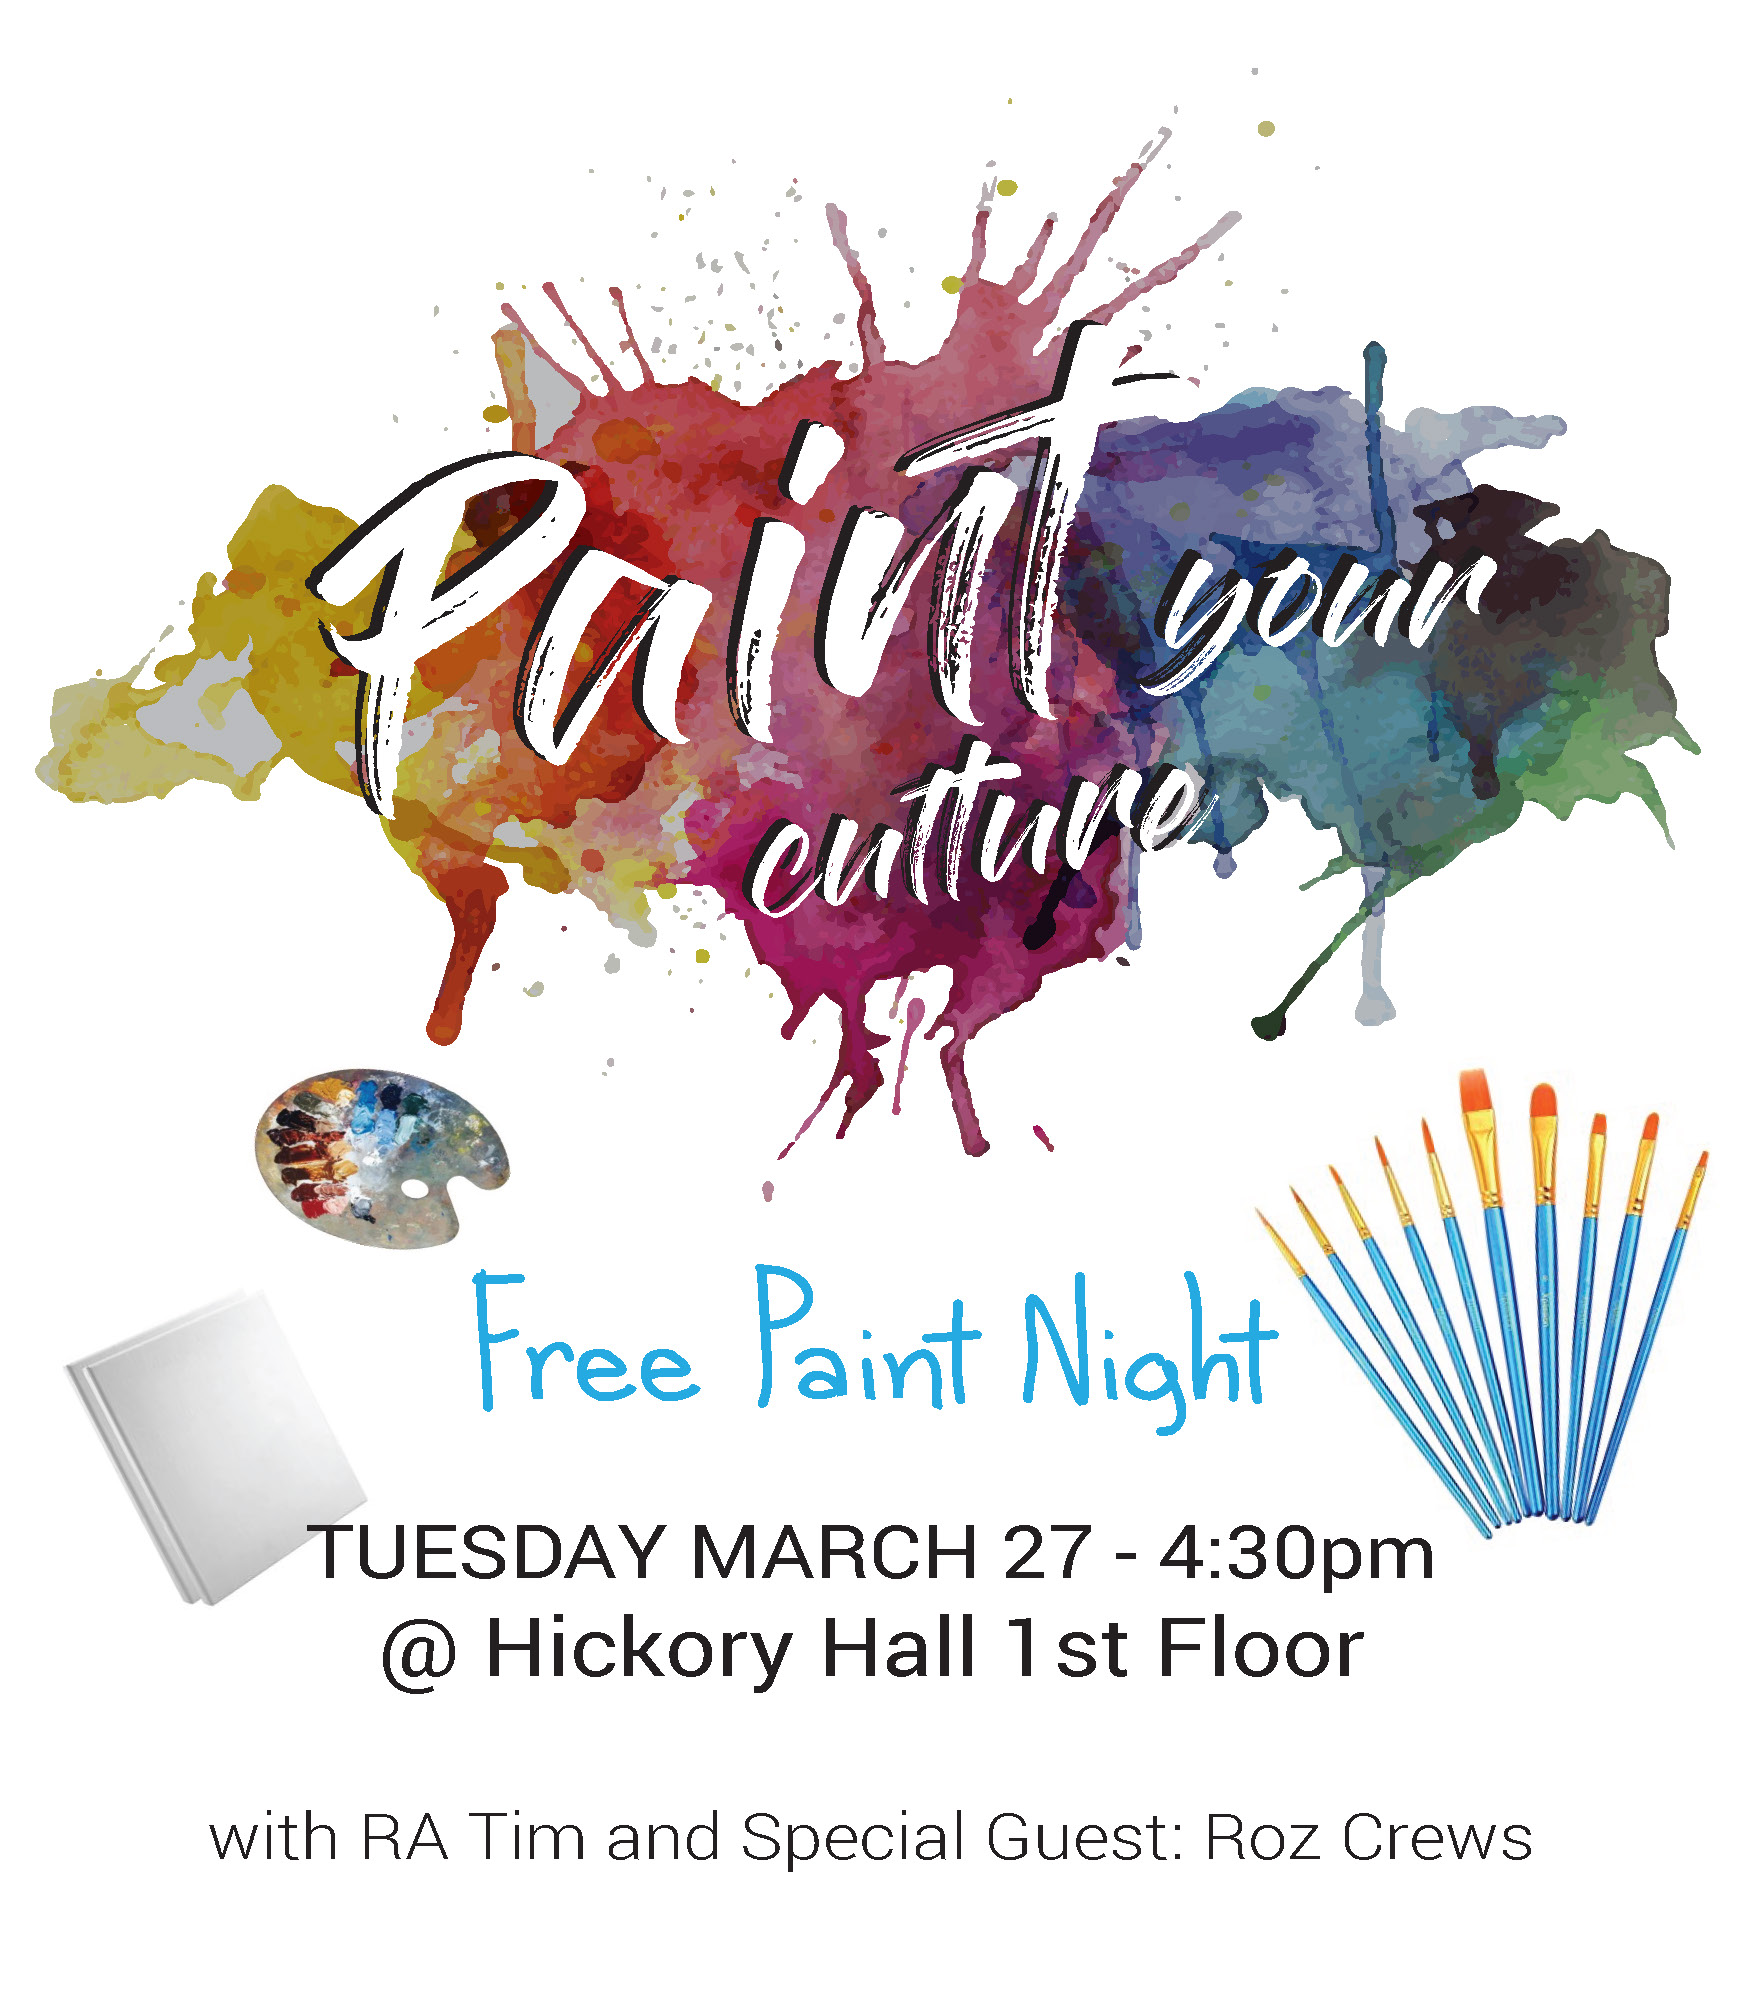 """Tomorrow we will be painting with RA Tim in Hickory Hall, discussing what it means to have a """"culture."""""""